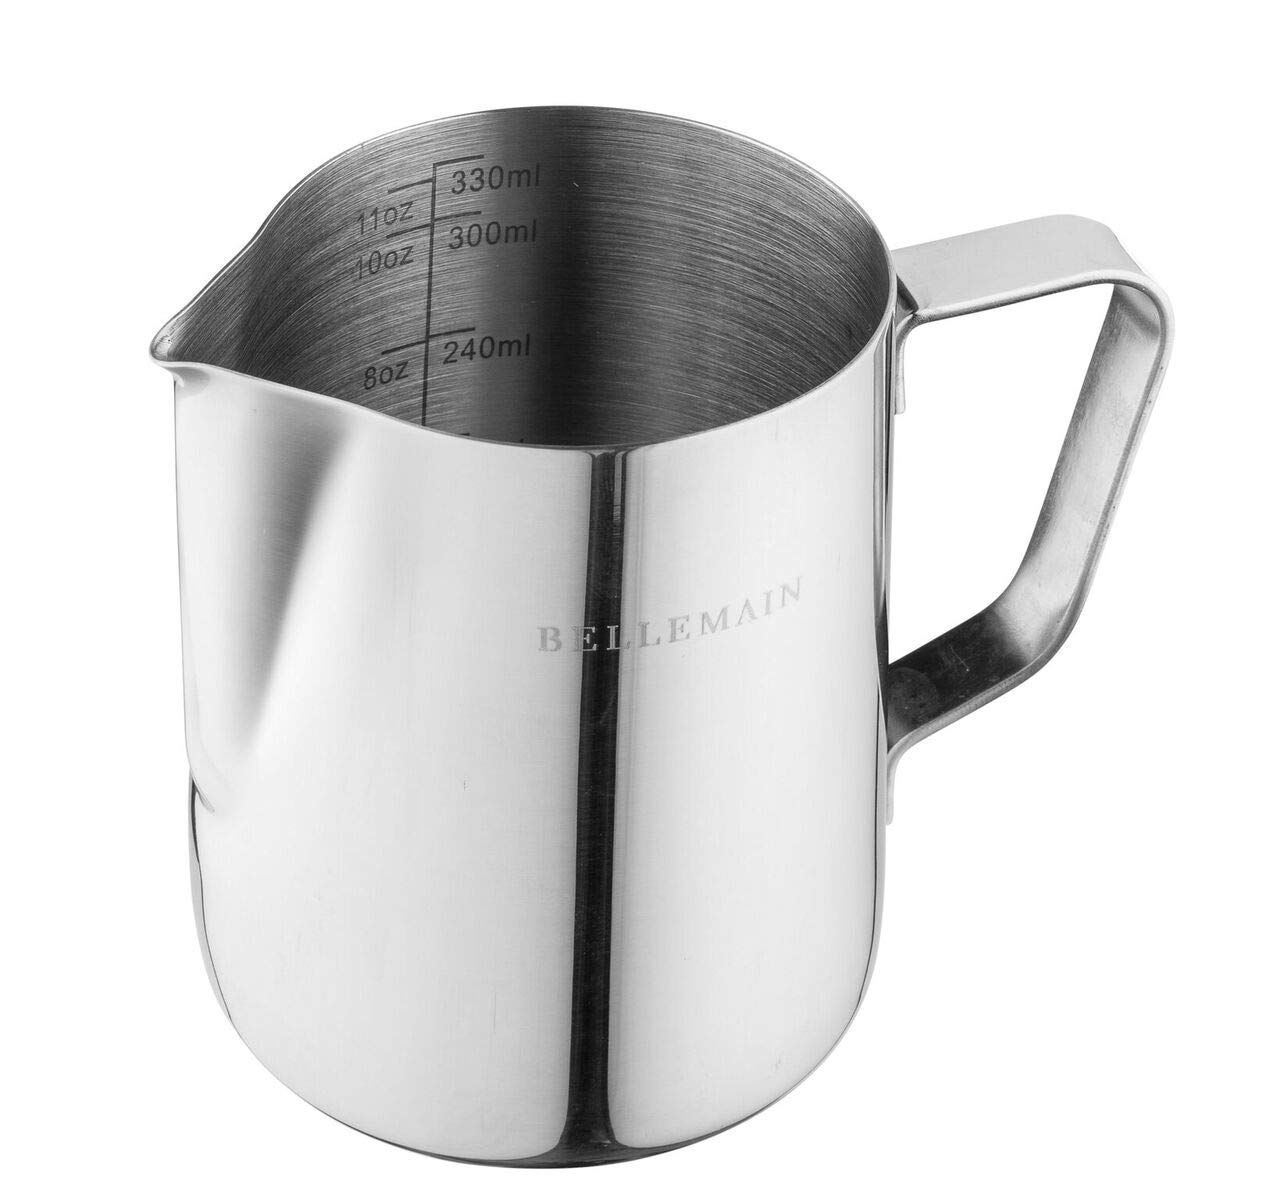 Stainless Steel Milk Frothing Pitcher, by Bellemain— Ideal for Espresso Machines and Latte Art, 12 oz./350 mL perfect size for making 1 cappuccino or 2 lattes, Larger pitchers force you to waste milk.